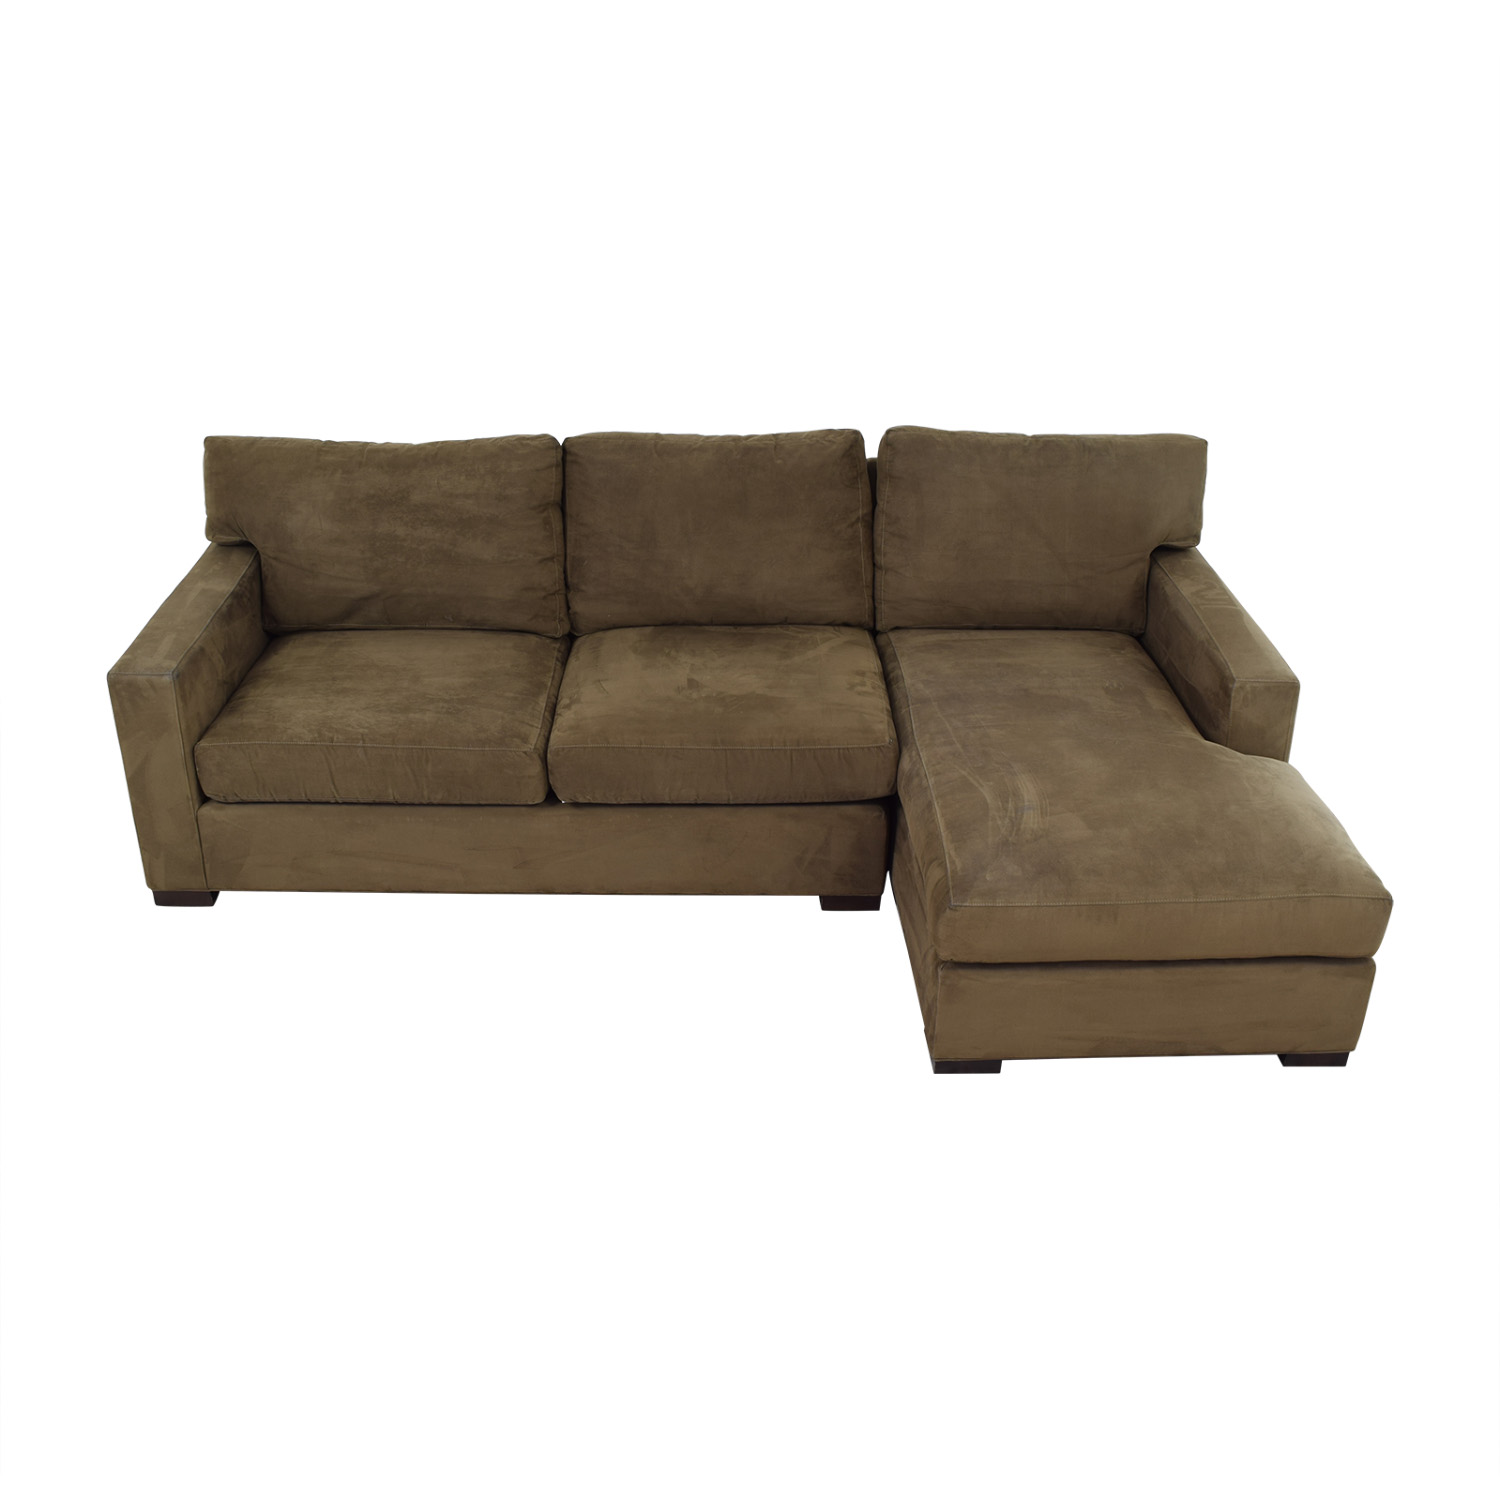 shop Crate & Barrel Sectional Sofa with Chaise Crate & Barrel